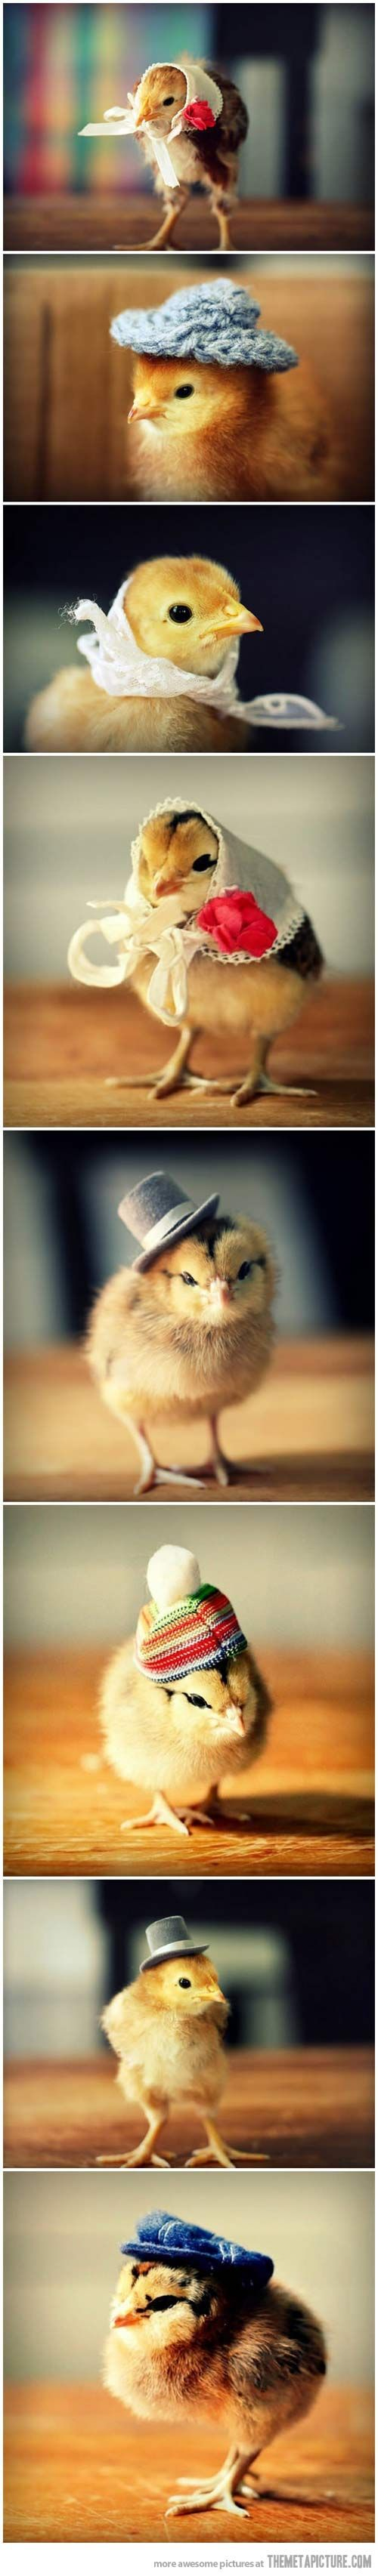 Chicks in hats…